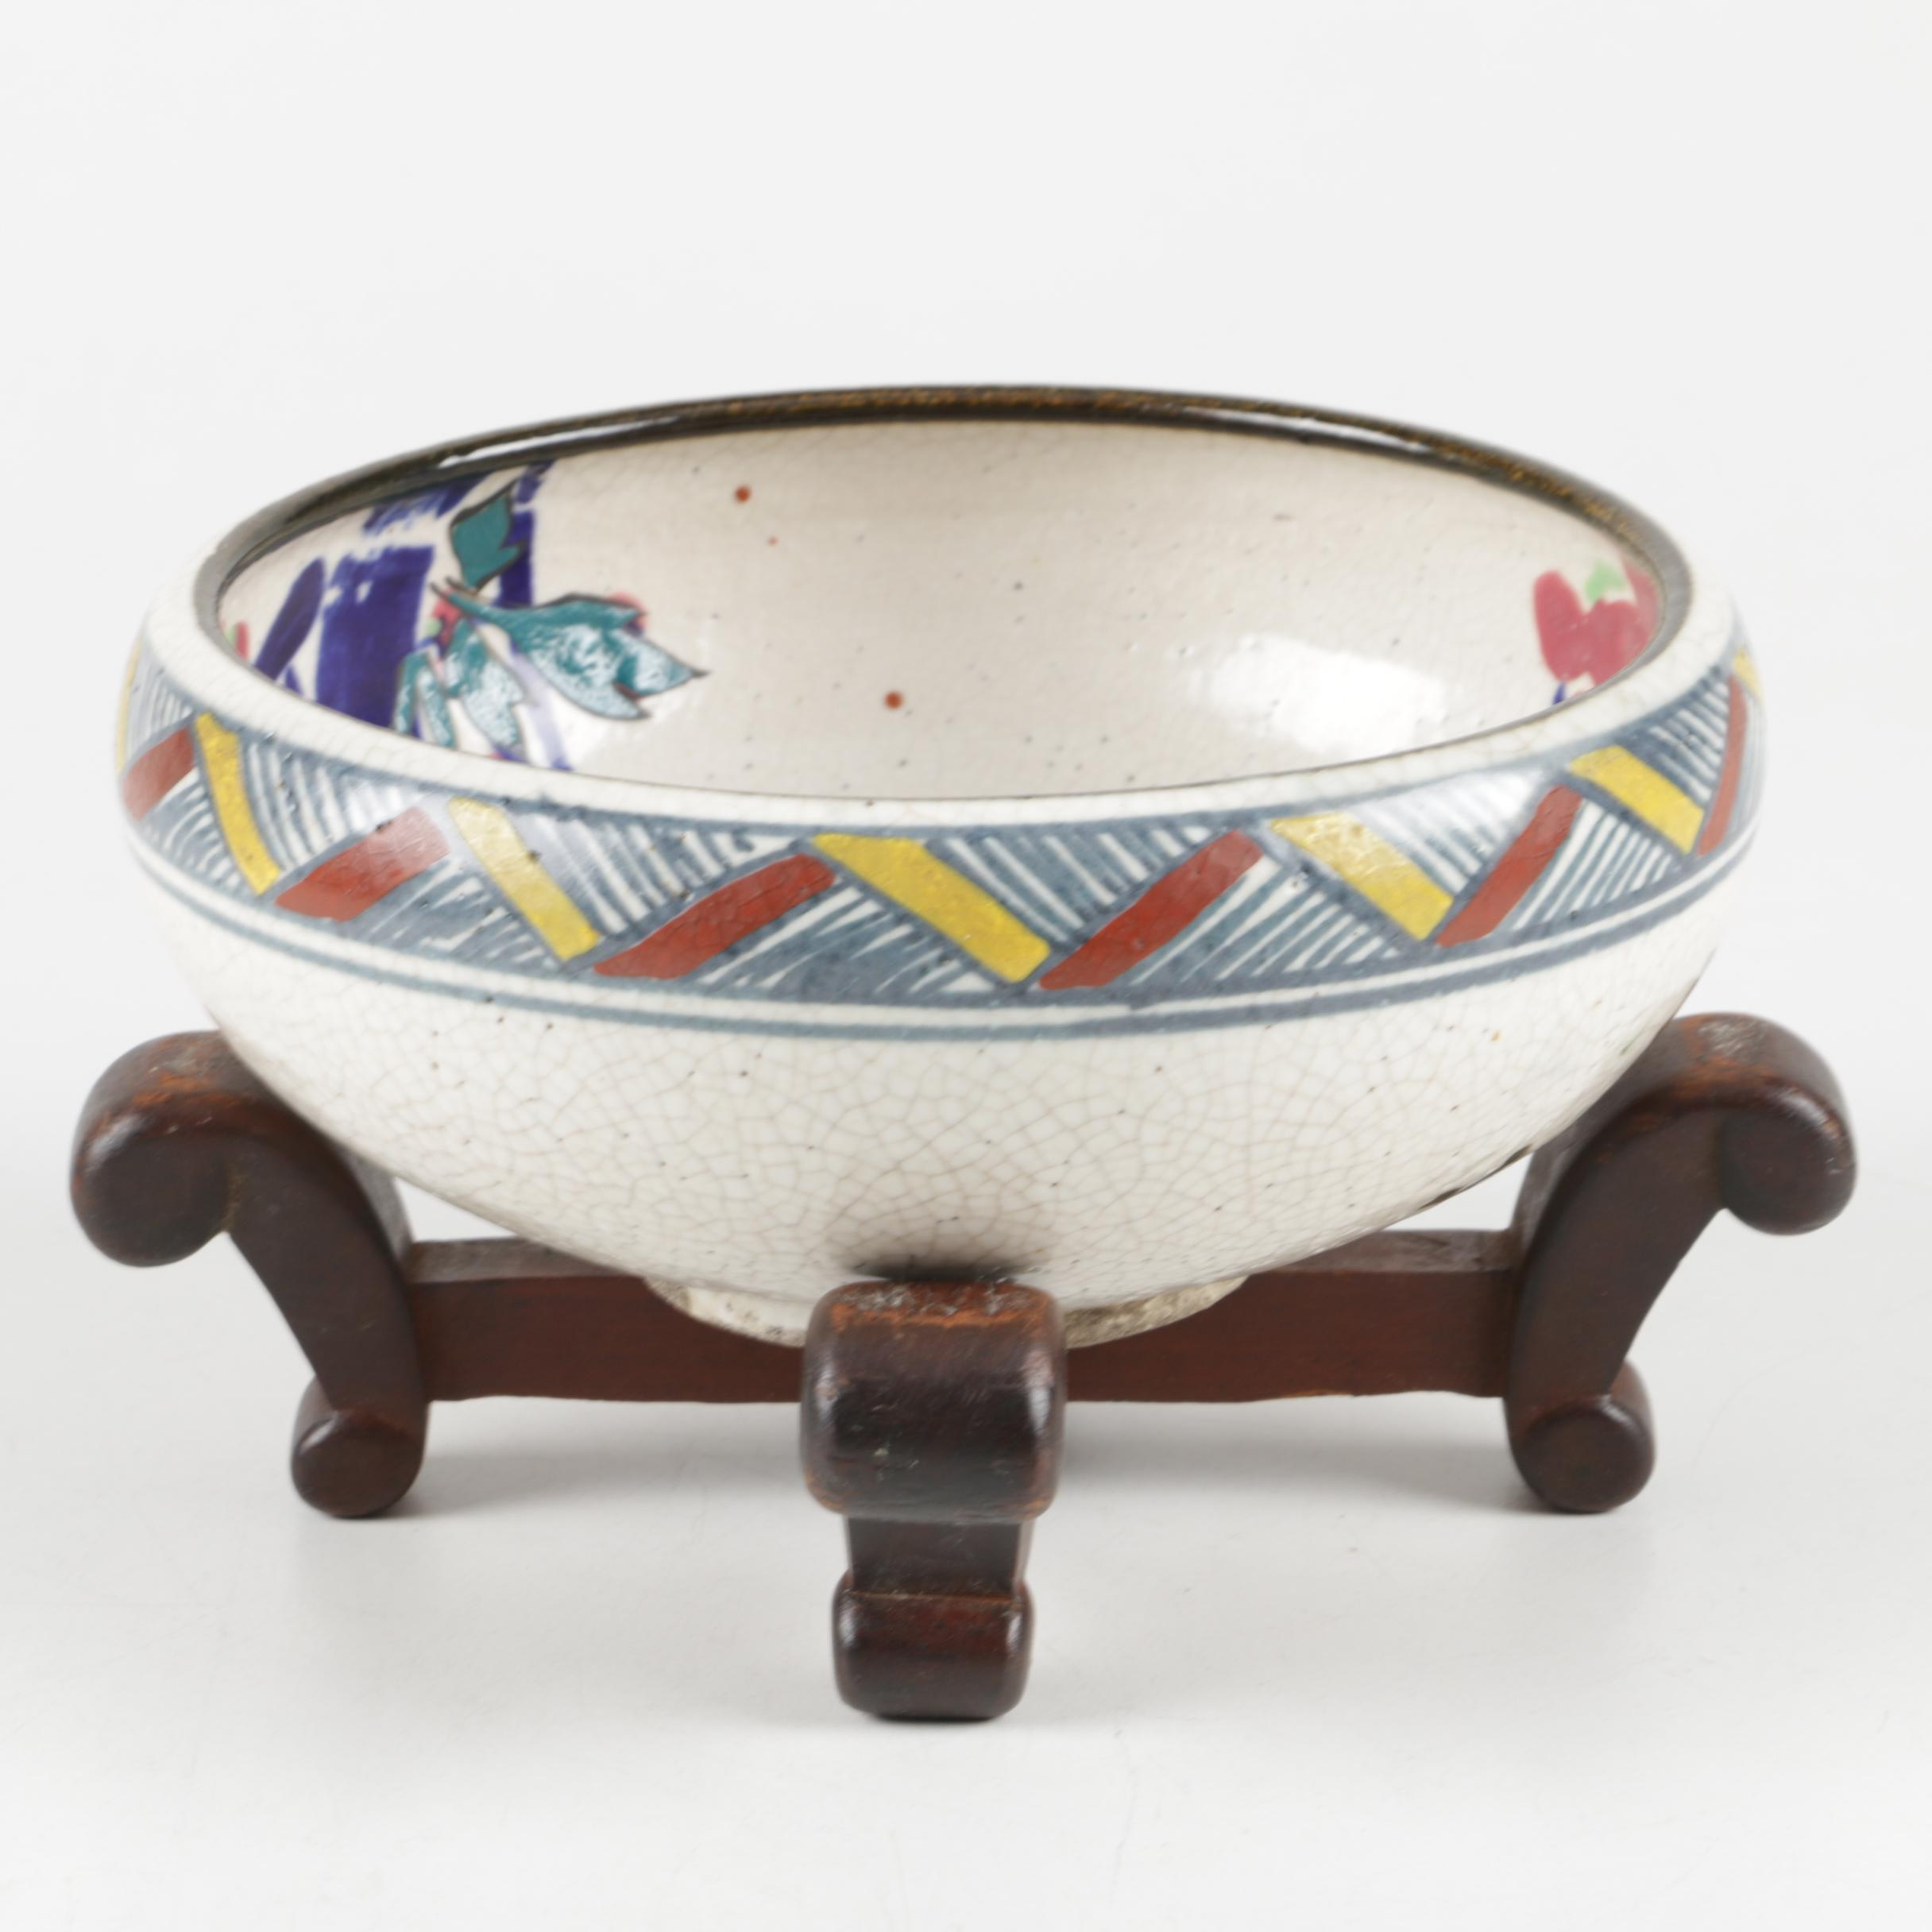 Japanese Hand-Painted Crackle Glaze Bowl With Wooden Stand